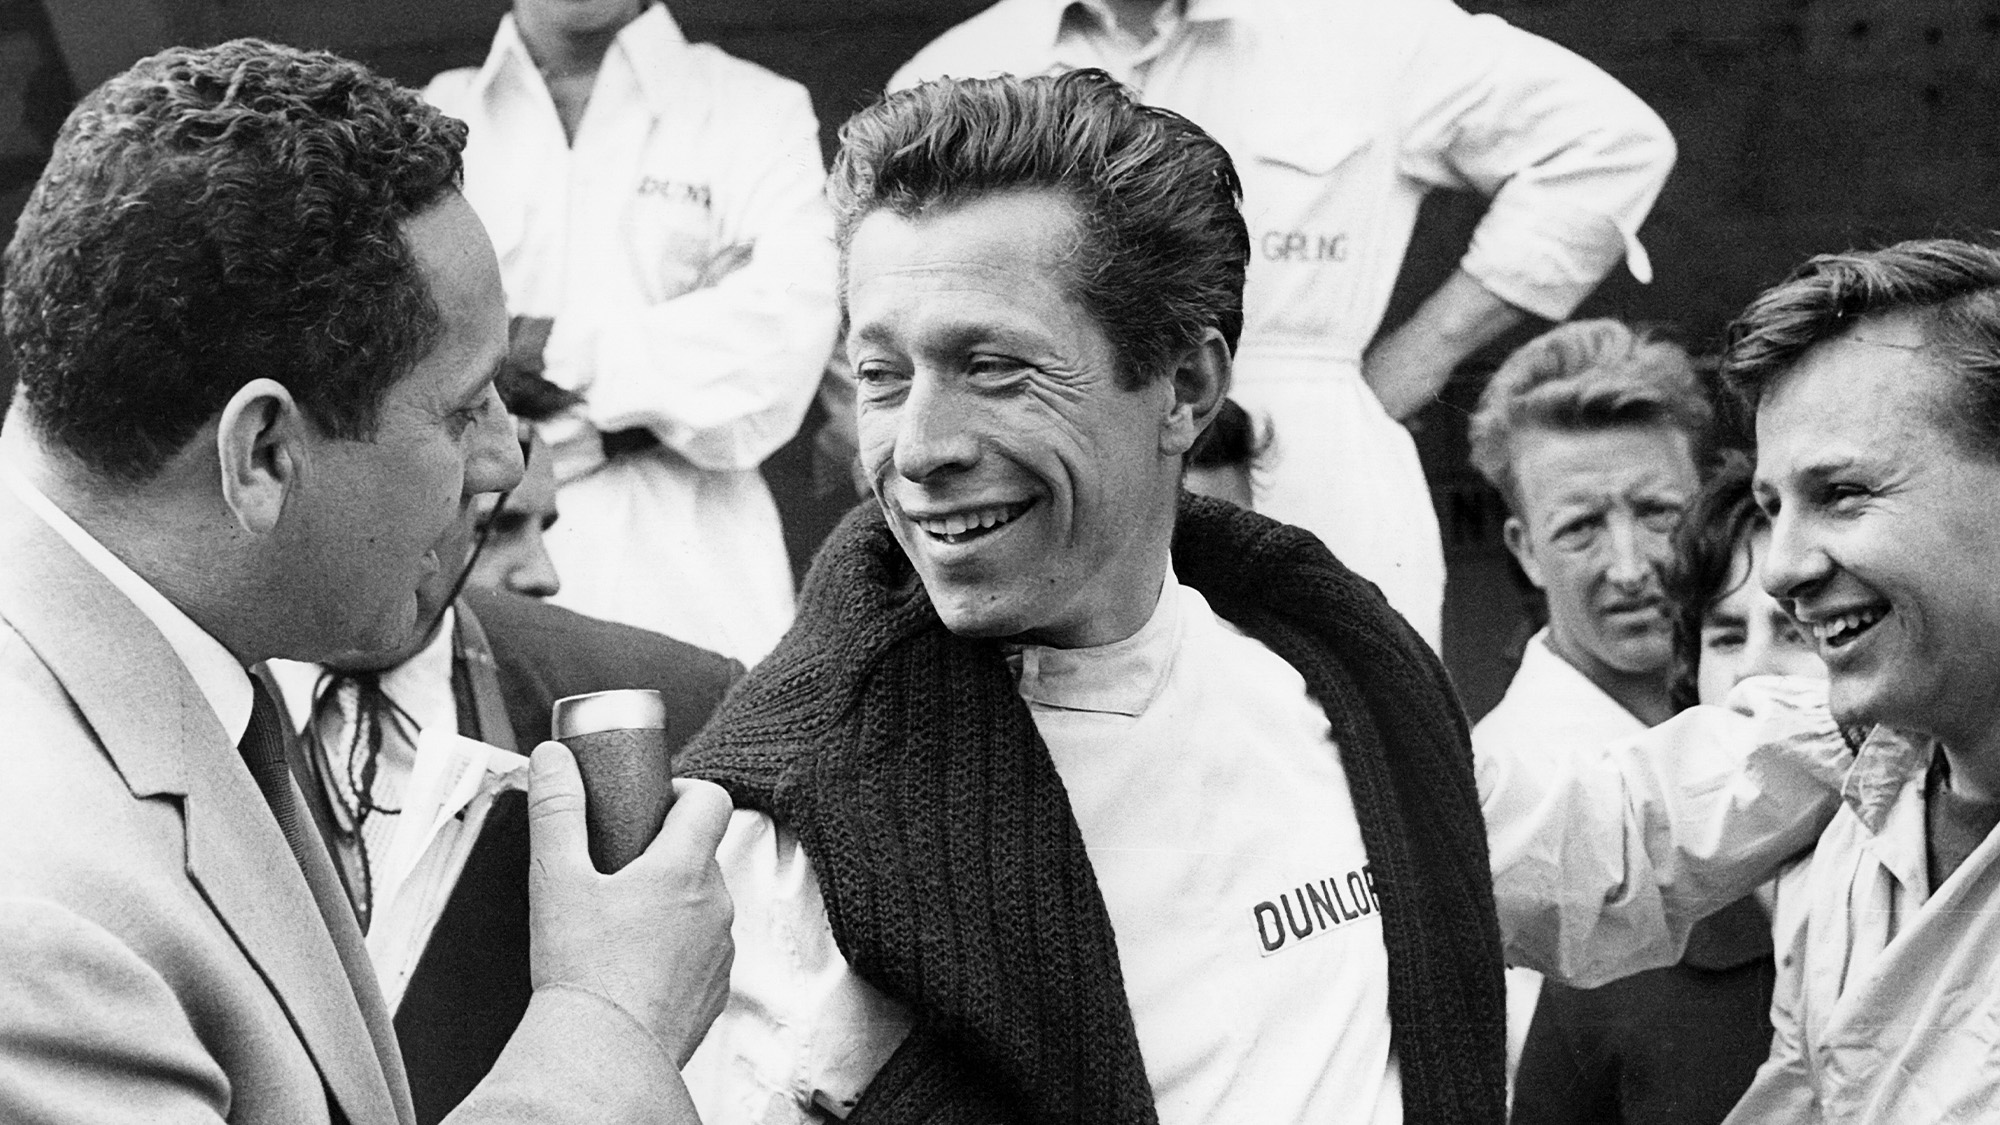 Olivier Gendebien with Bruce Mclaren at Reims-Gieux for the 1960 French Grand Prix